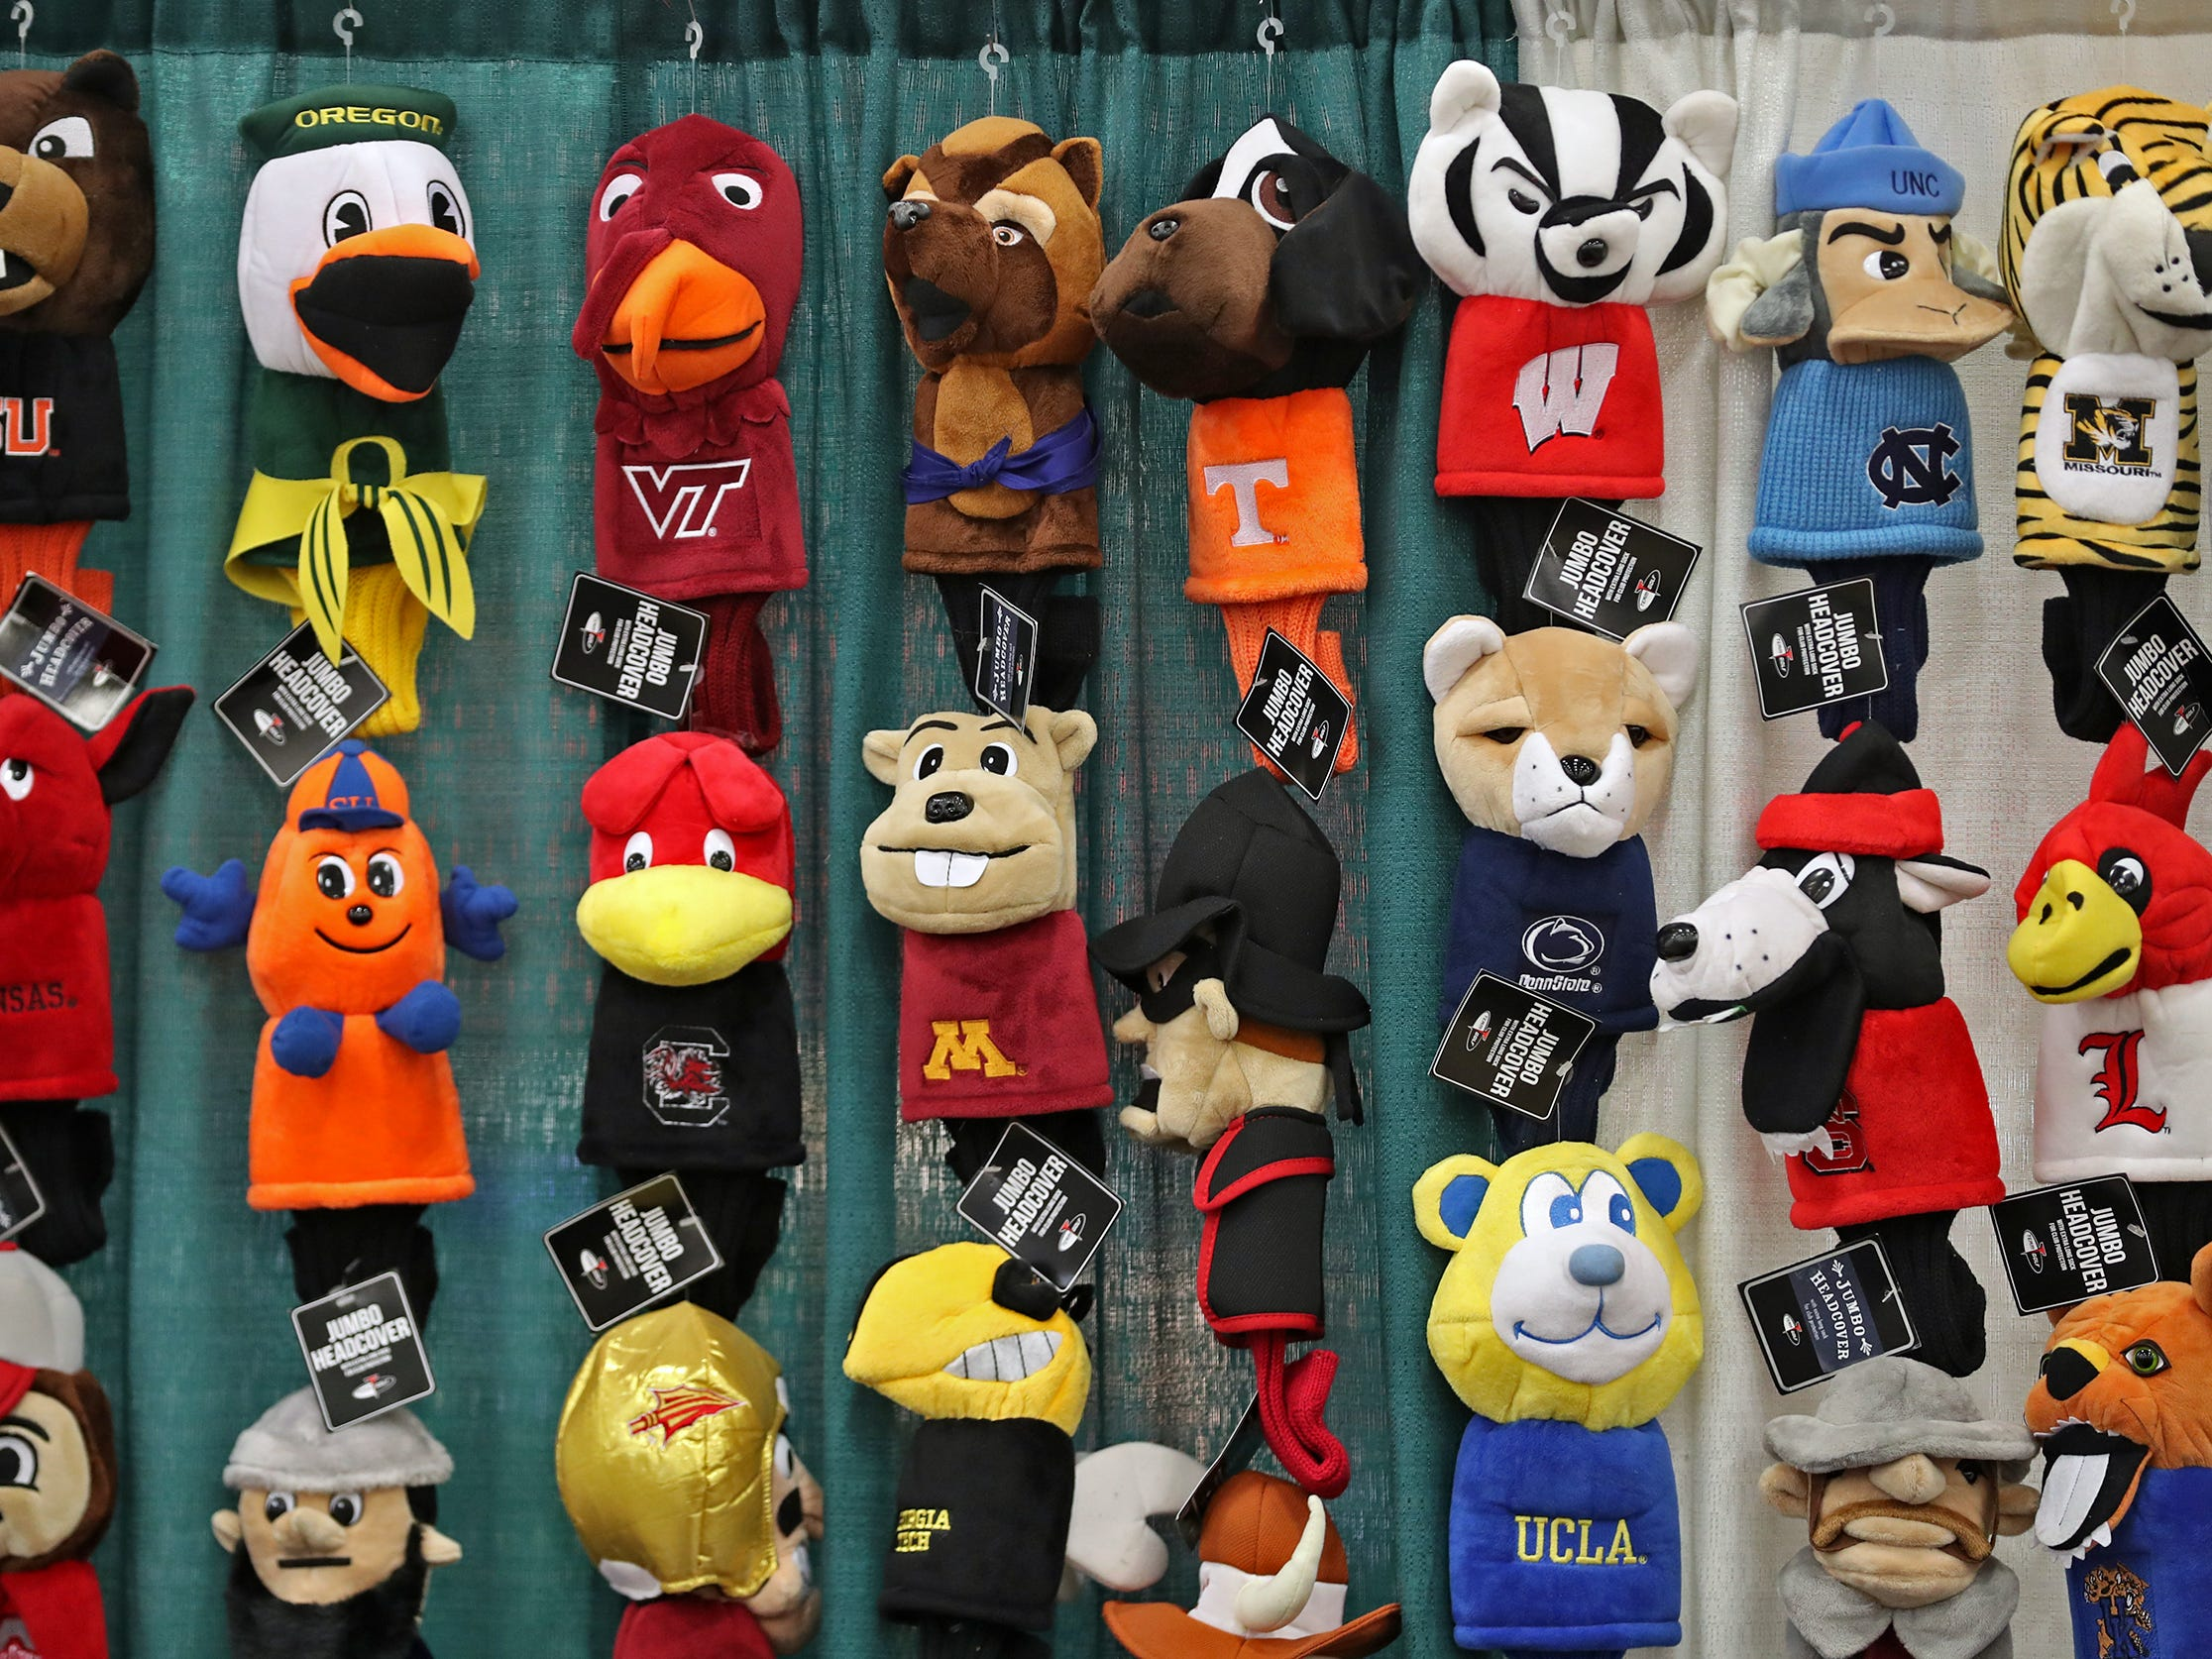 Club head covers with College logos are seen for sale at the CollegeGolfStore.com booth during the Indy Golf Expo at the Indiana State Fairgrounds, Sunday, Jan. 20, 2019.